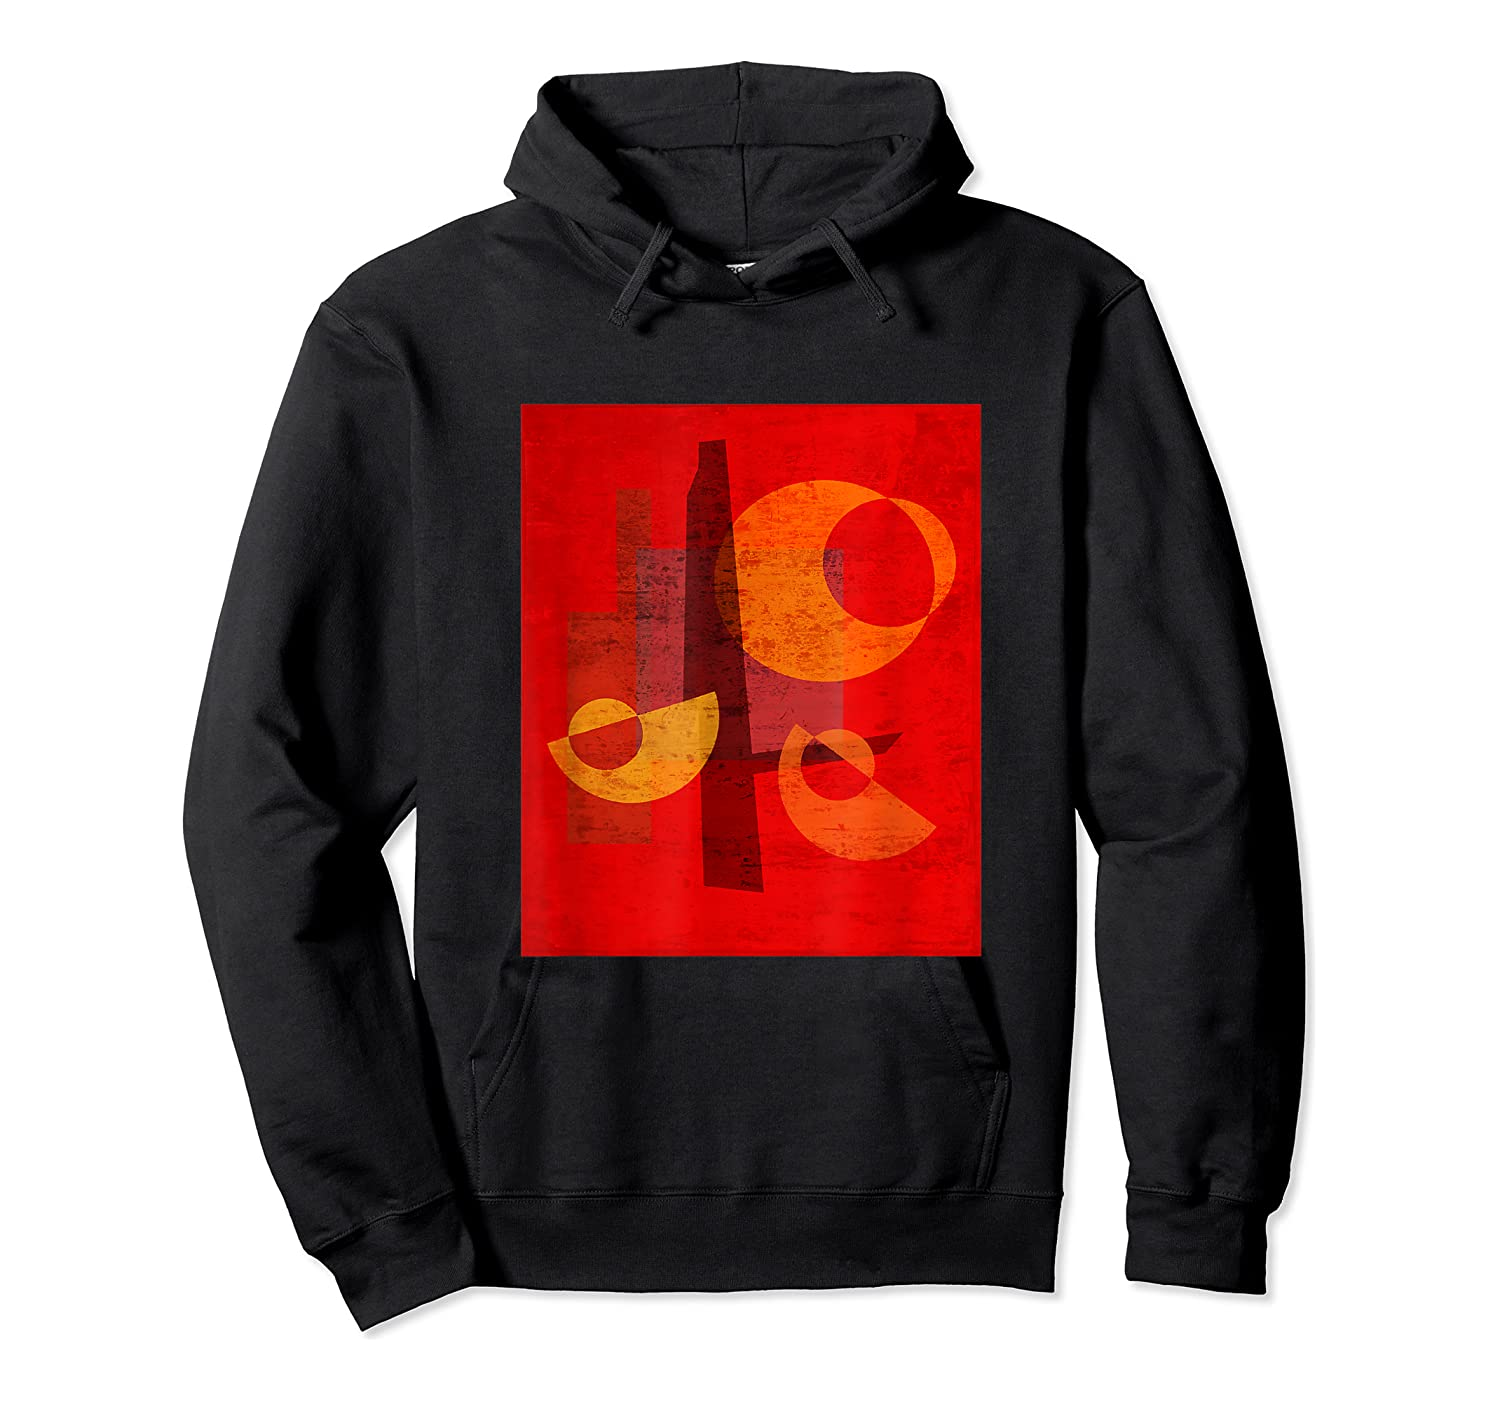 Red And Orange Abstract Shapes Shirts Unisex Pullover Hoodie